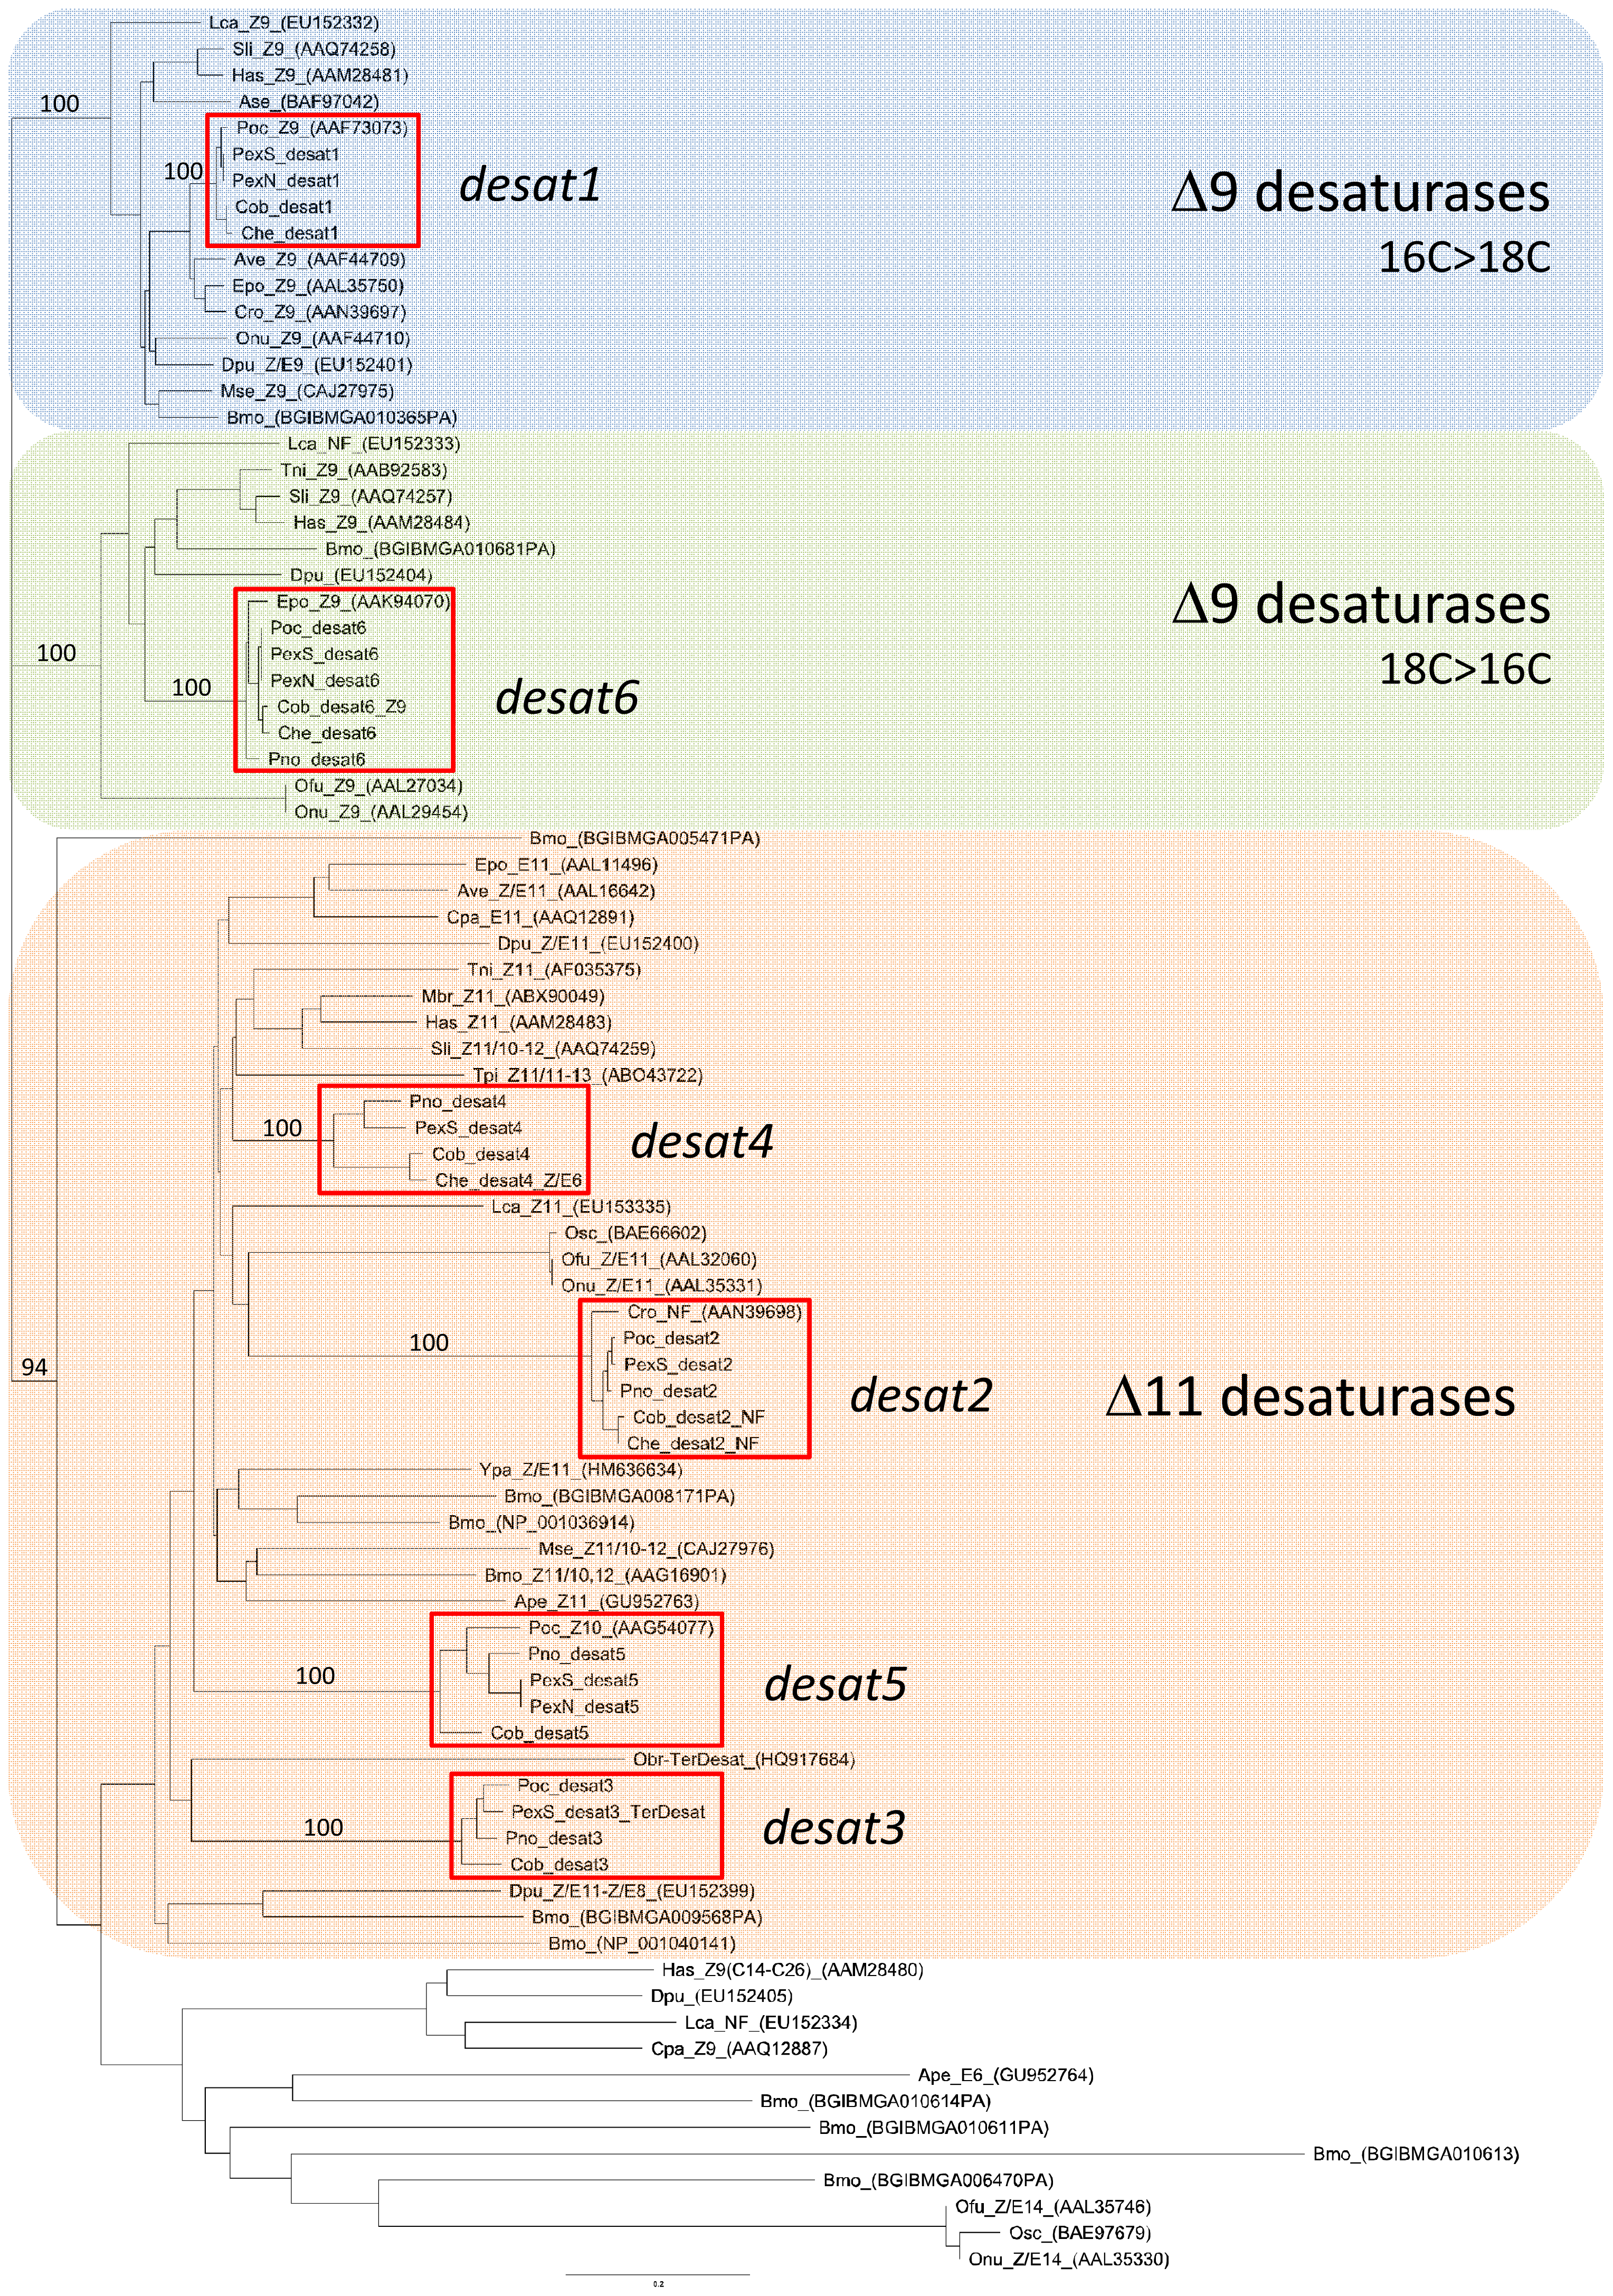 Phylogeny of 86 lepidopteran desaturases including those encoded by <i>desat1-6</i> from <i>Ctenopseustis</i> and <i>Planotortrix</i>.